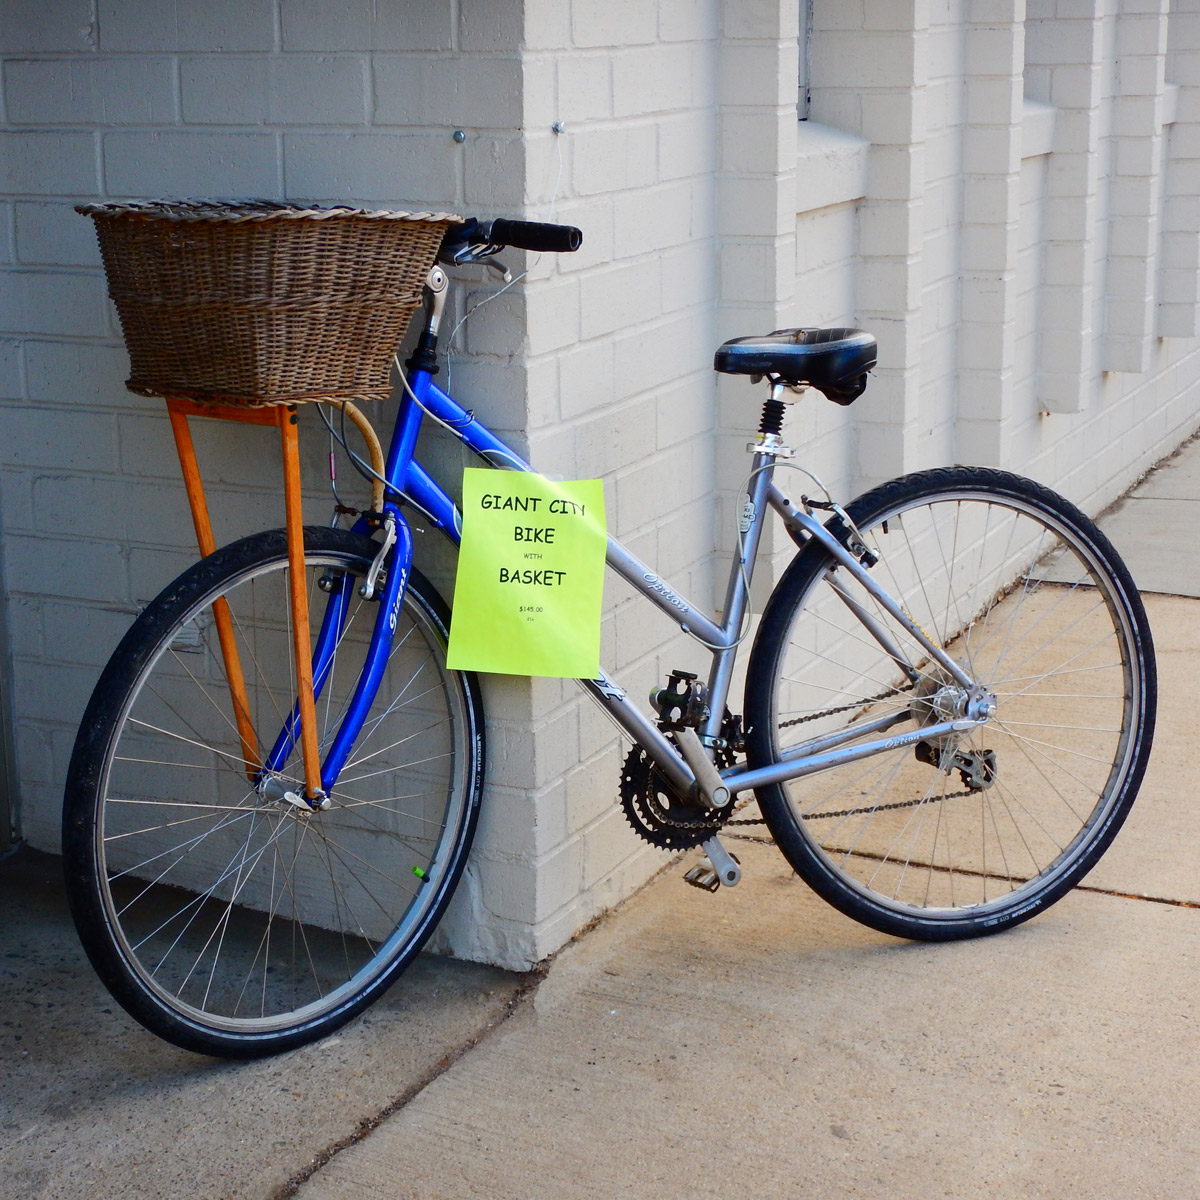 A Giant City bicycle for sale in Asheville NC.